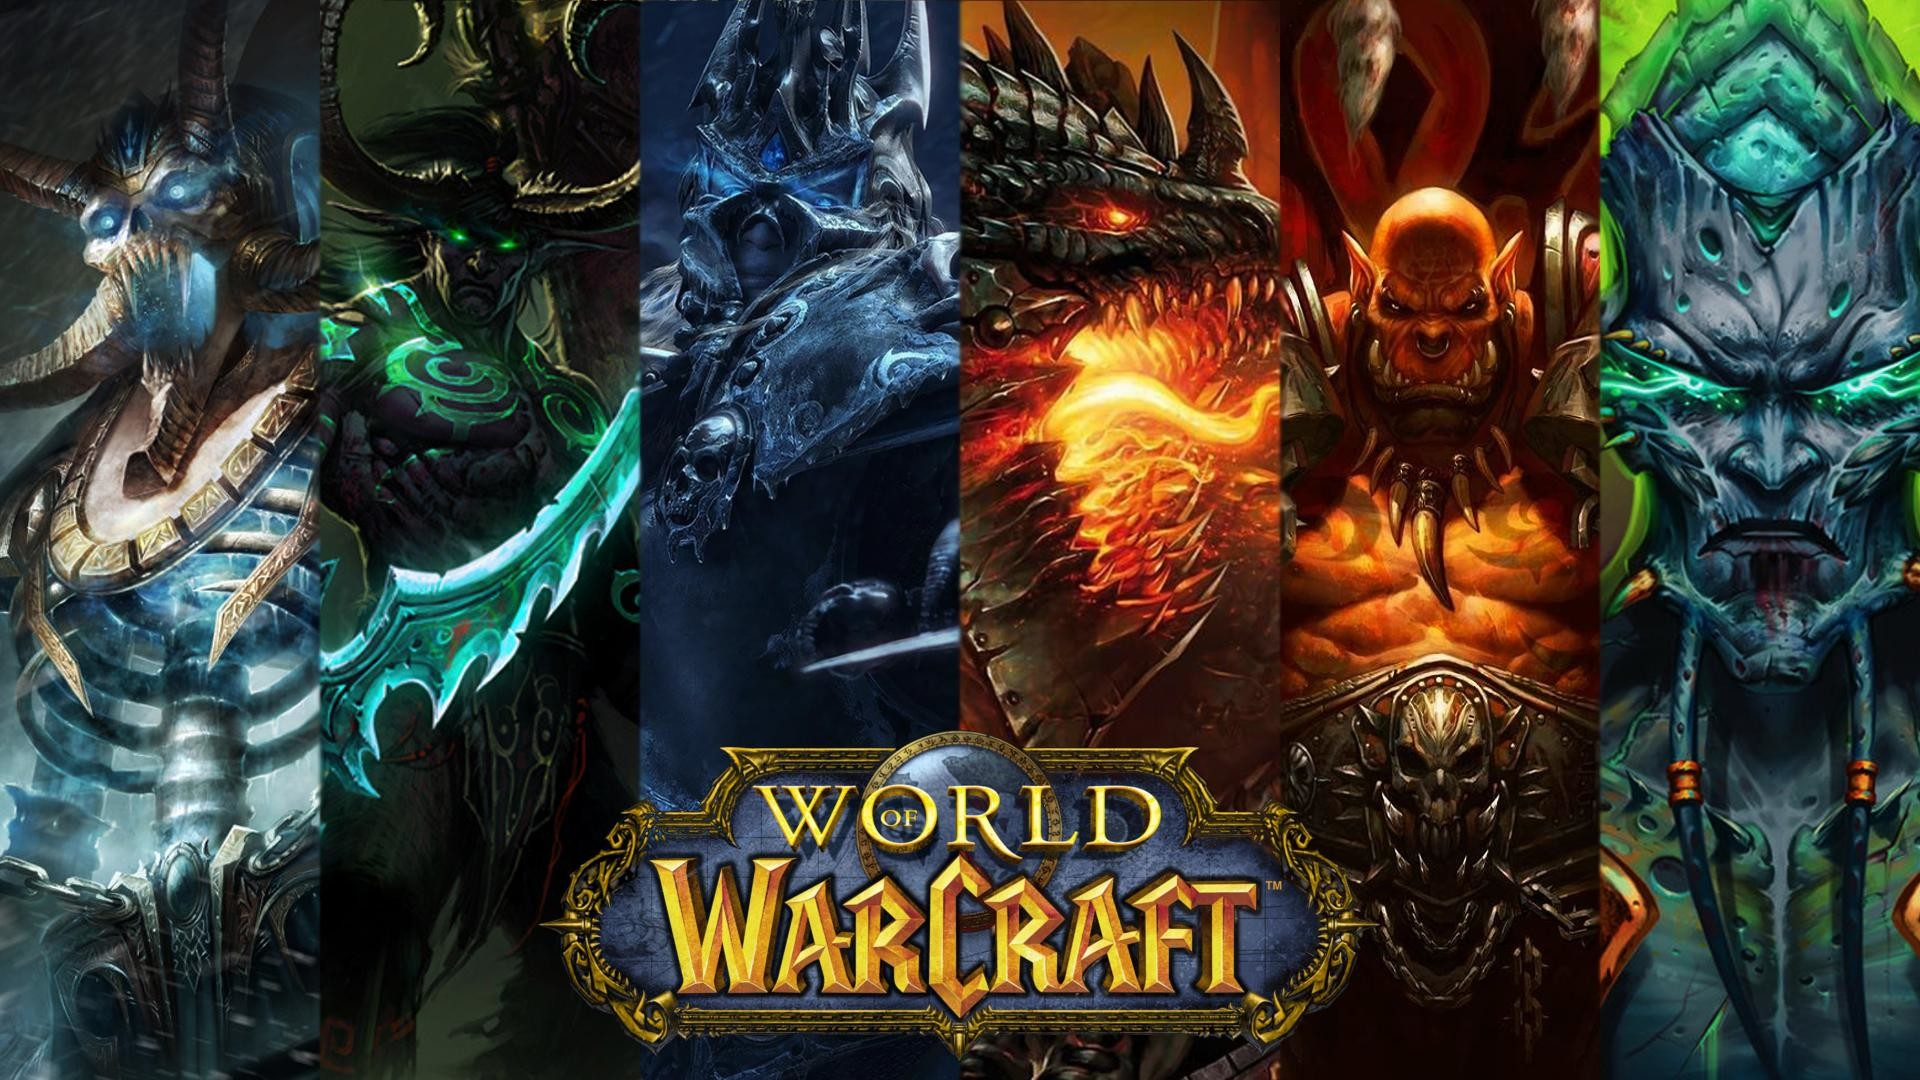 Illidan Stormrage Wallpapers Hd Wow World Of Warcraft All